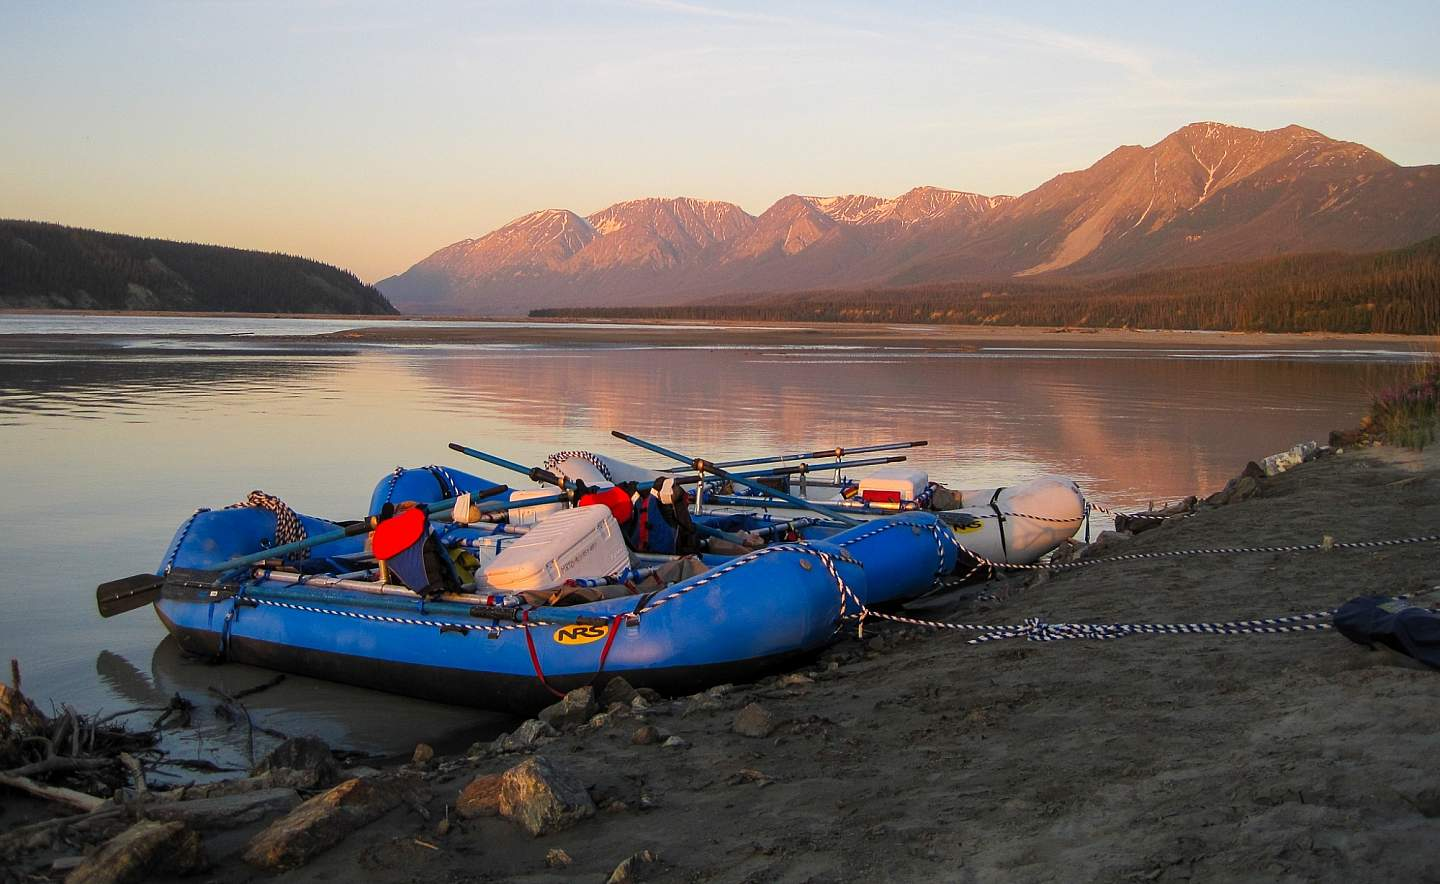 Inflatable rafts filled with camping gear docked on the beach of an Alaskan river.